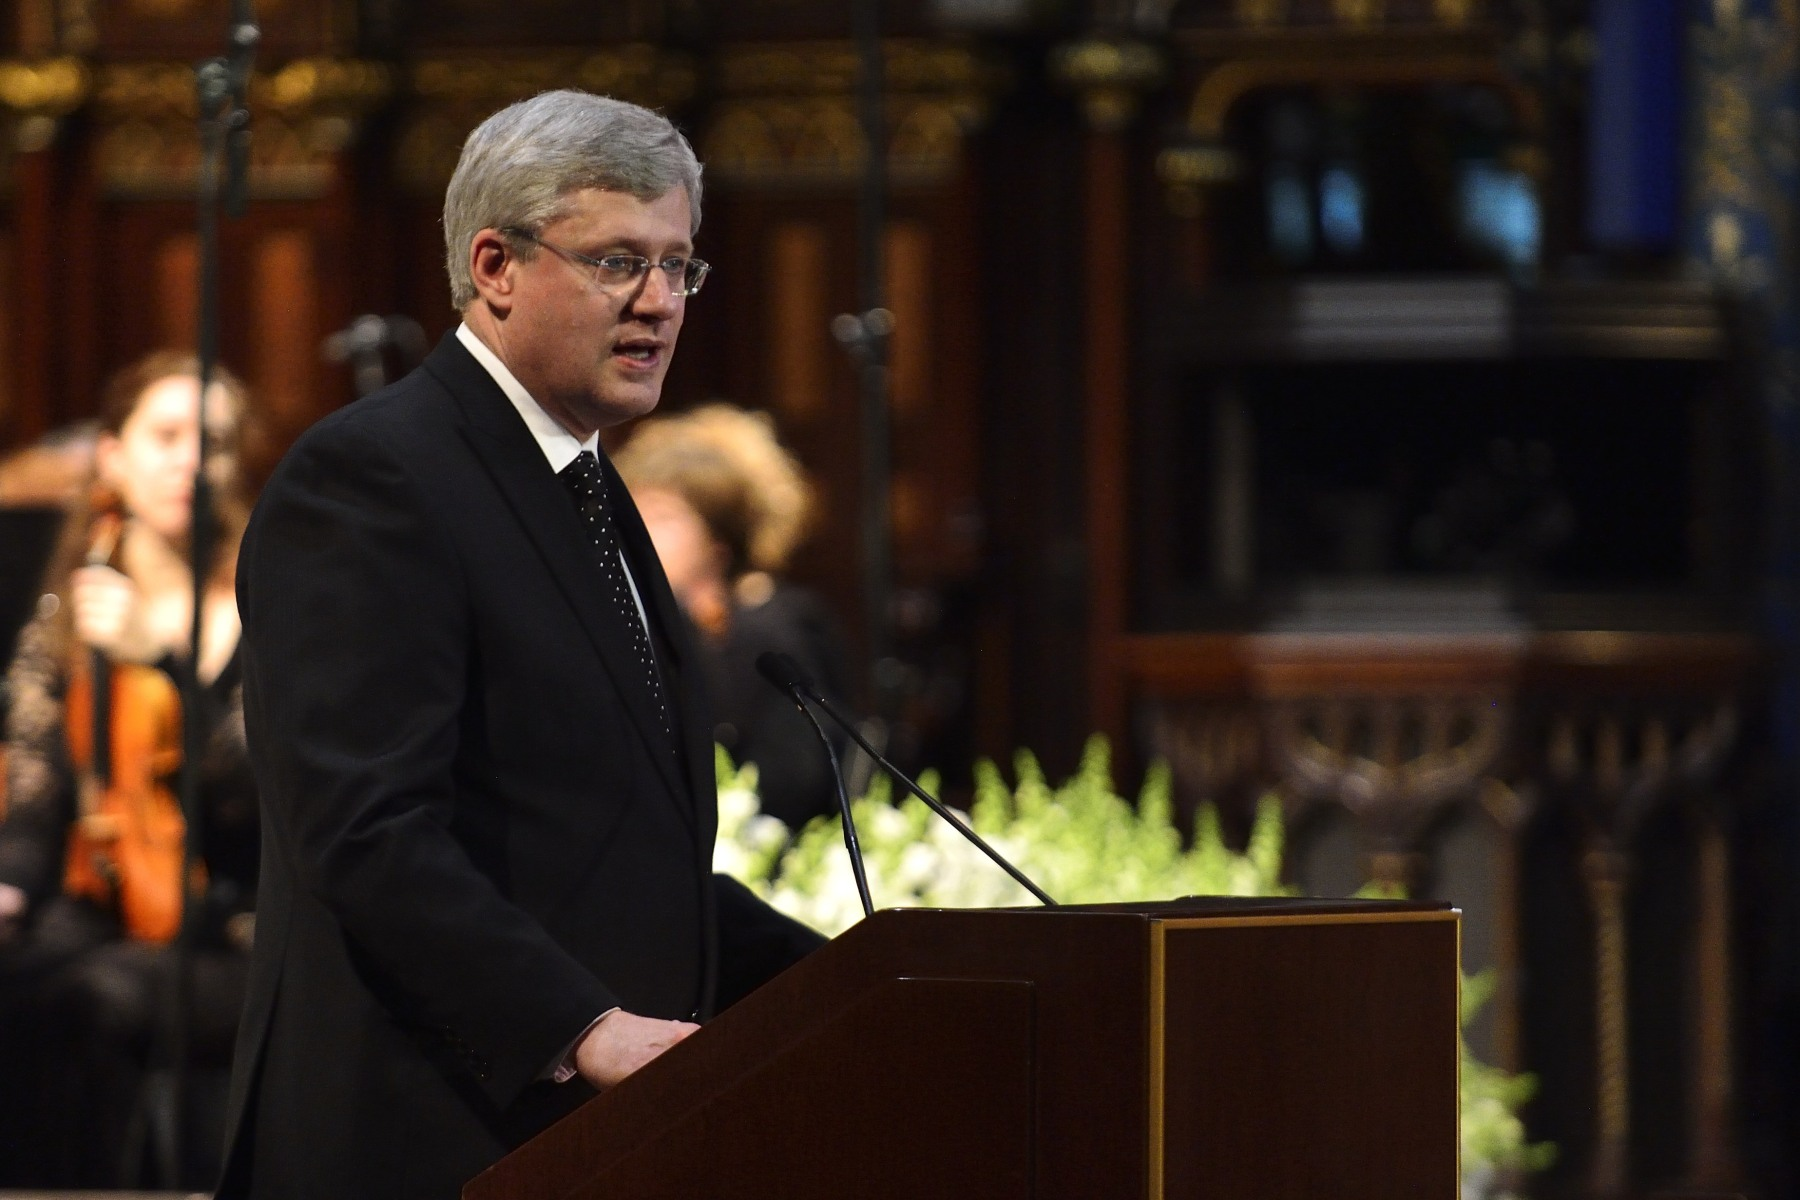 The Right Honourable Stephen Harper, Prime Minister of Canada, paid tribute to Paul G. Desmarais.